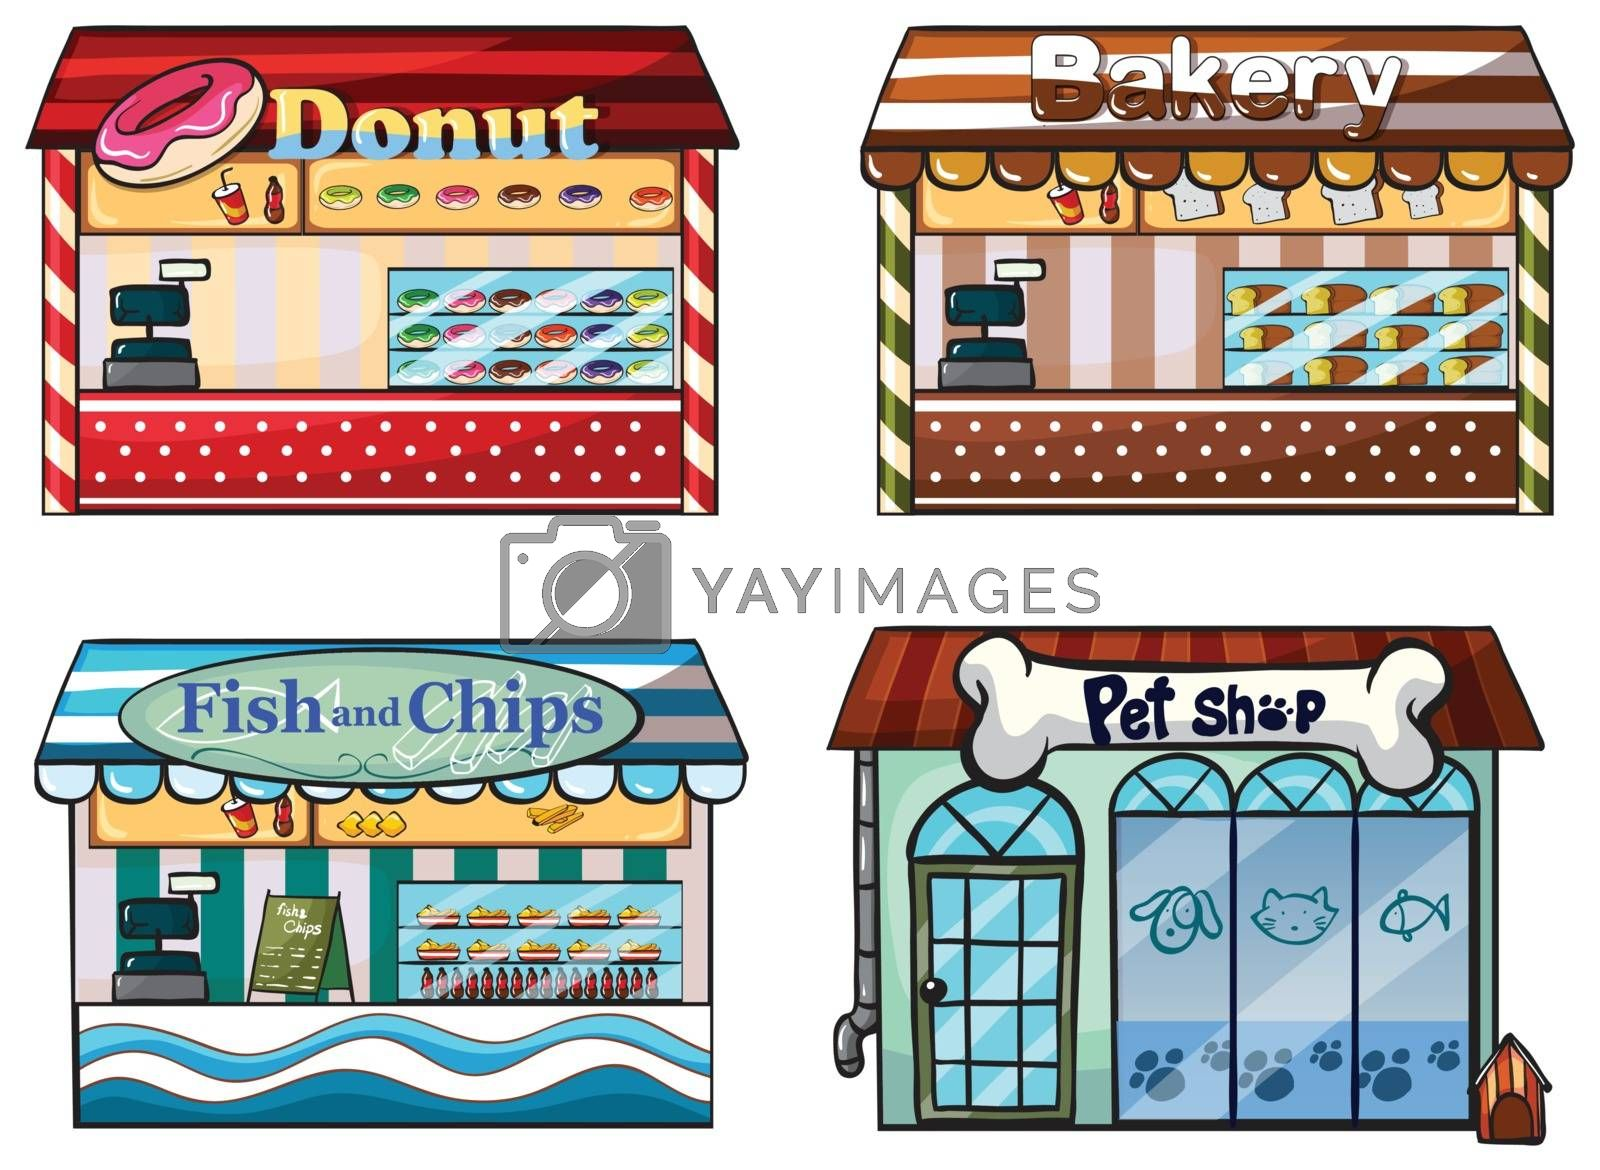 Illustration of a donut store, bakery, fish and chips store and a pet shop on a white background